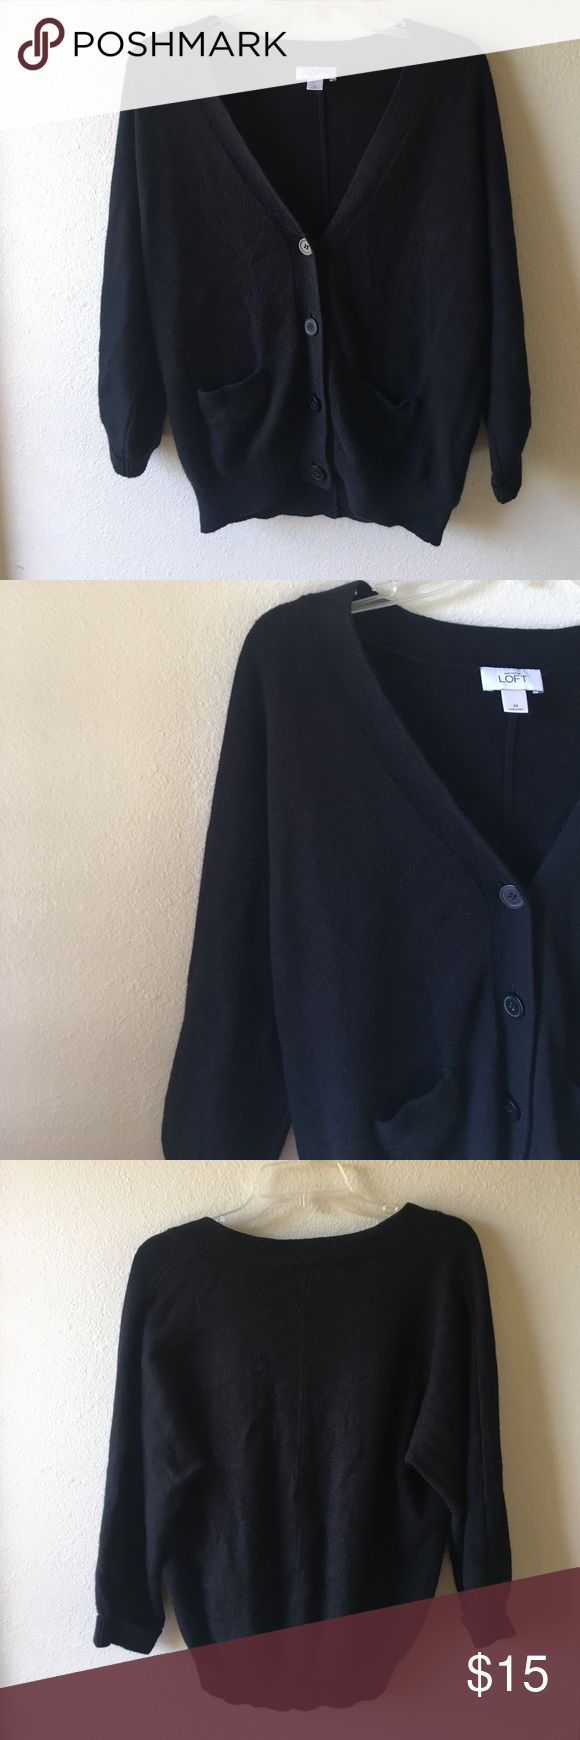 {Anne Taylor Loft} black button up sweater Anne Taylor Loft black button up sweater from The Loft. Pair this comfy sweater with a black or white shirt or camisole and boots or heels. Excellent condition only worn twice - no flaws! Ann Taylor Sweaters Cardigans